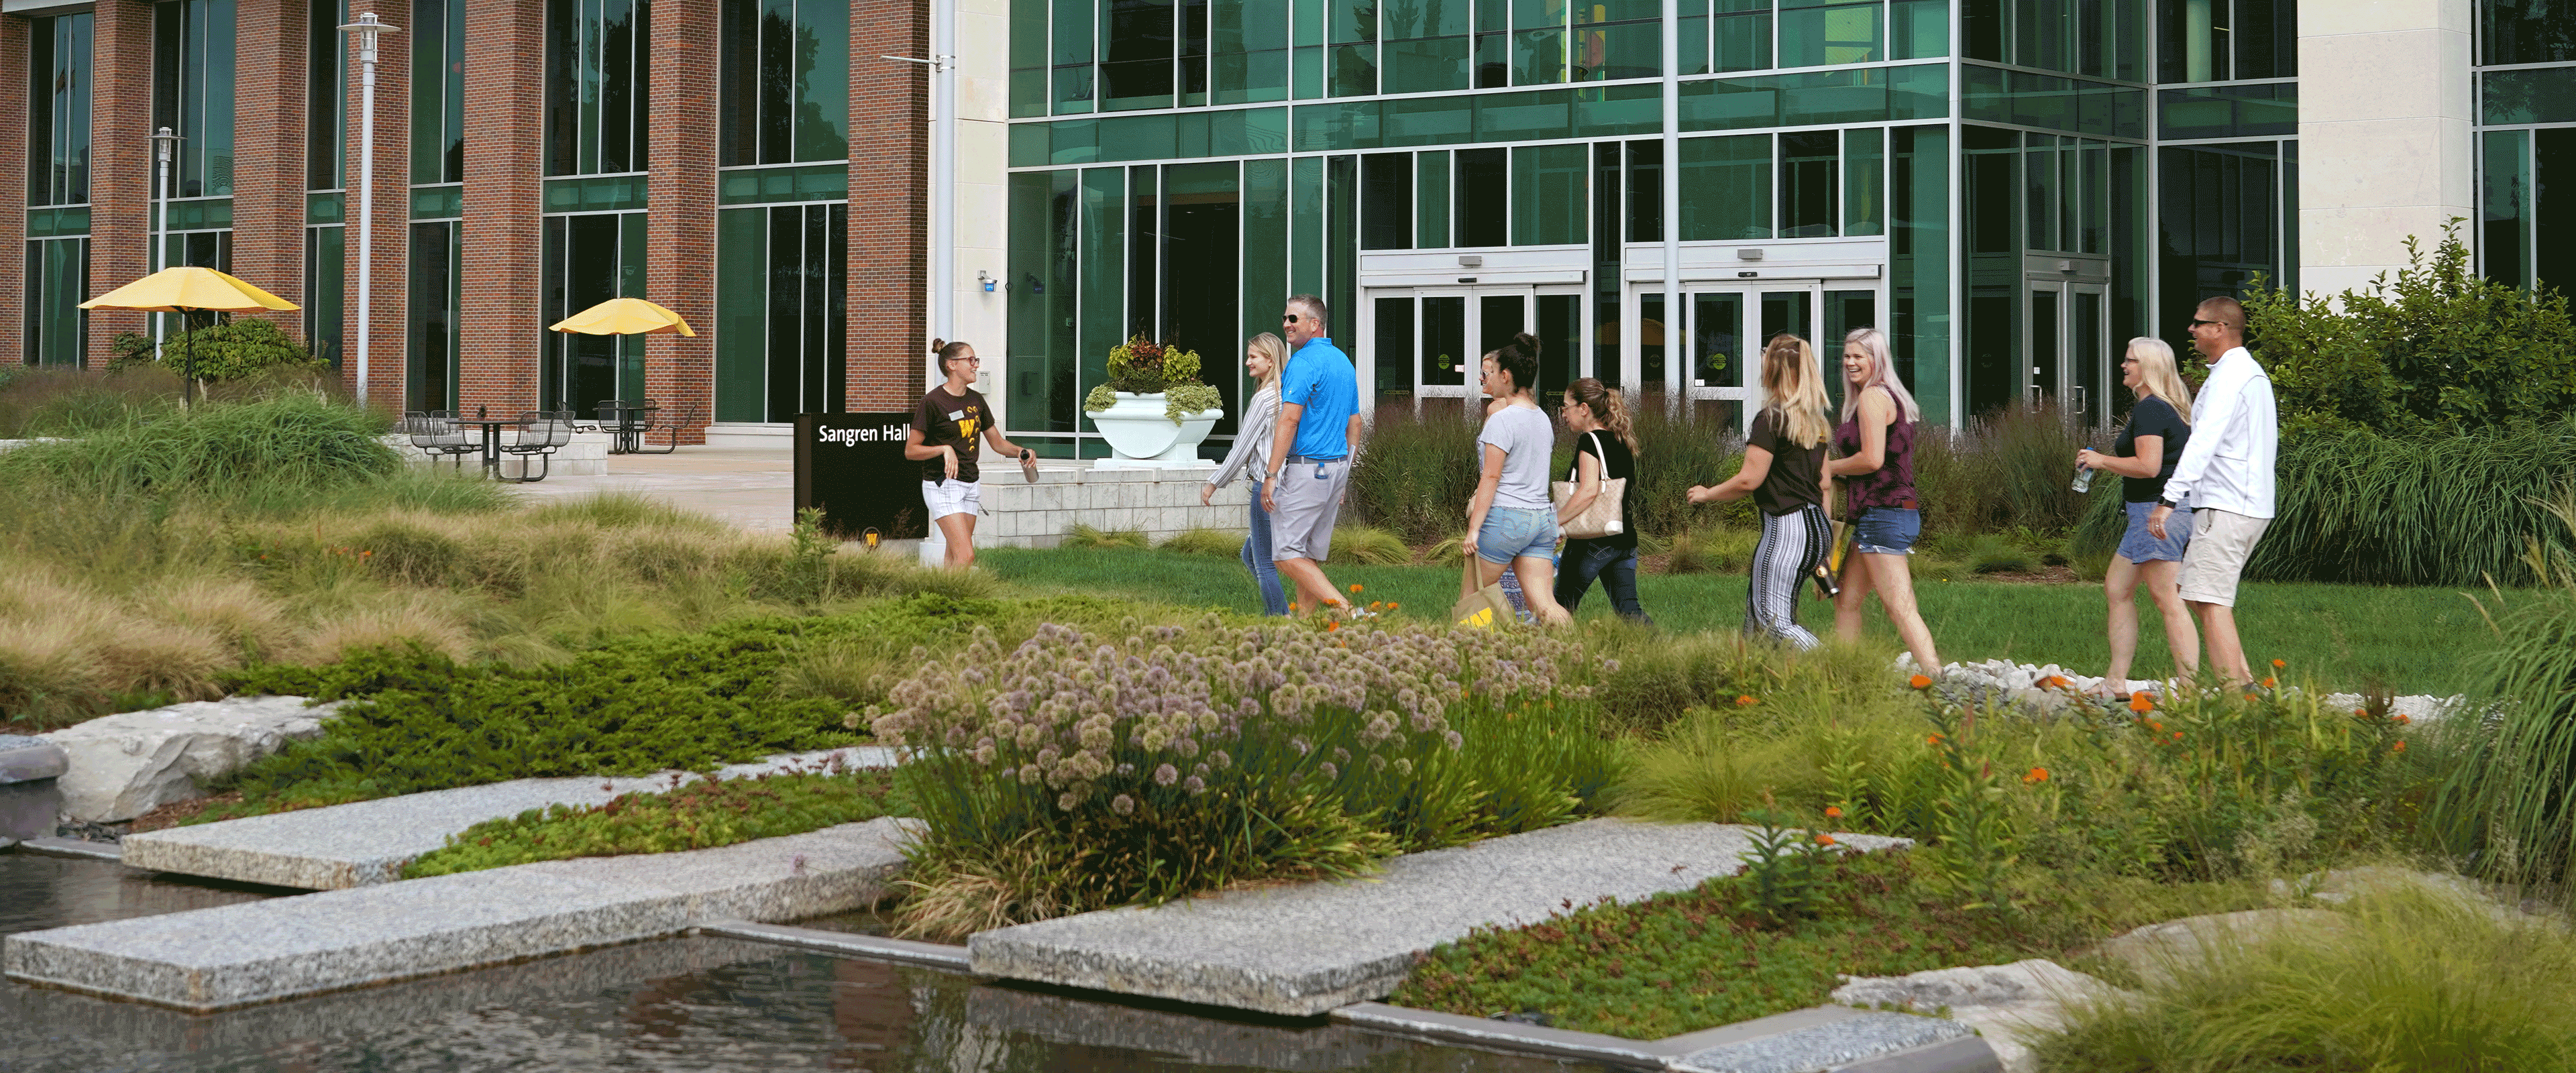 Page banner: students walking during a campus tour in front of Sangren Hall